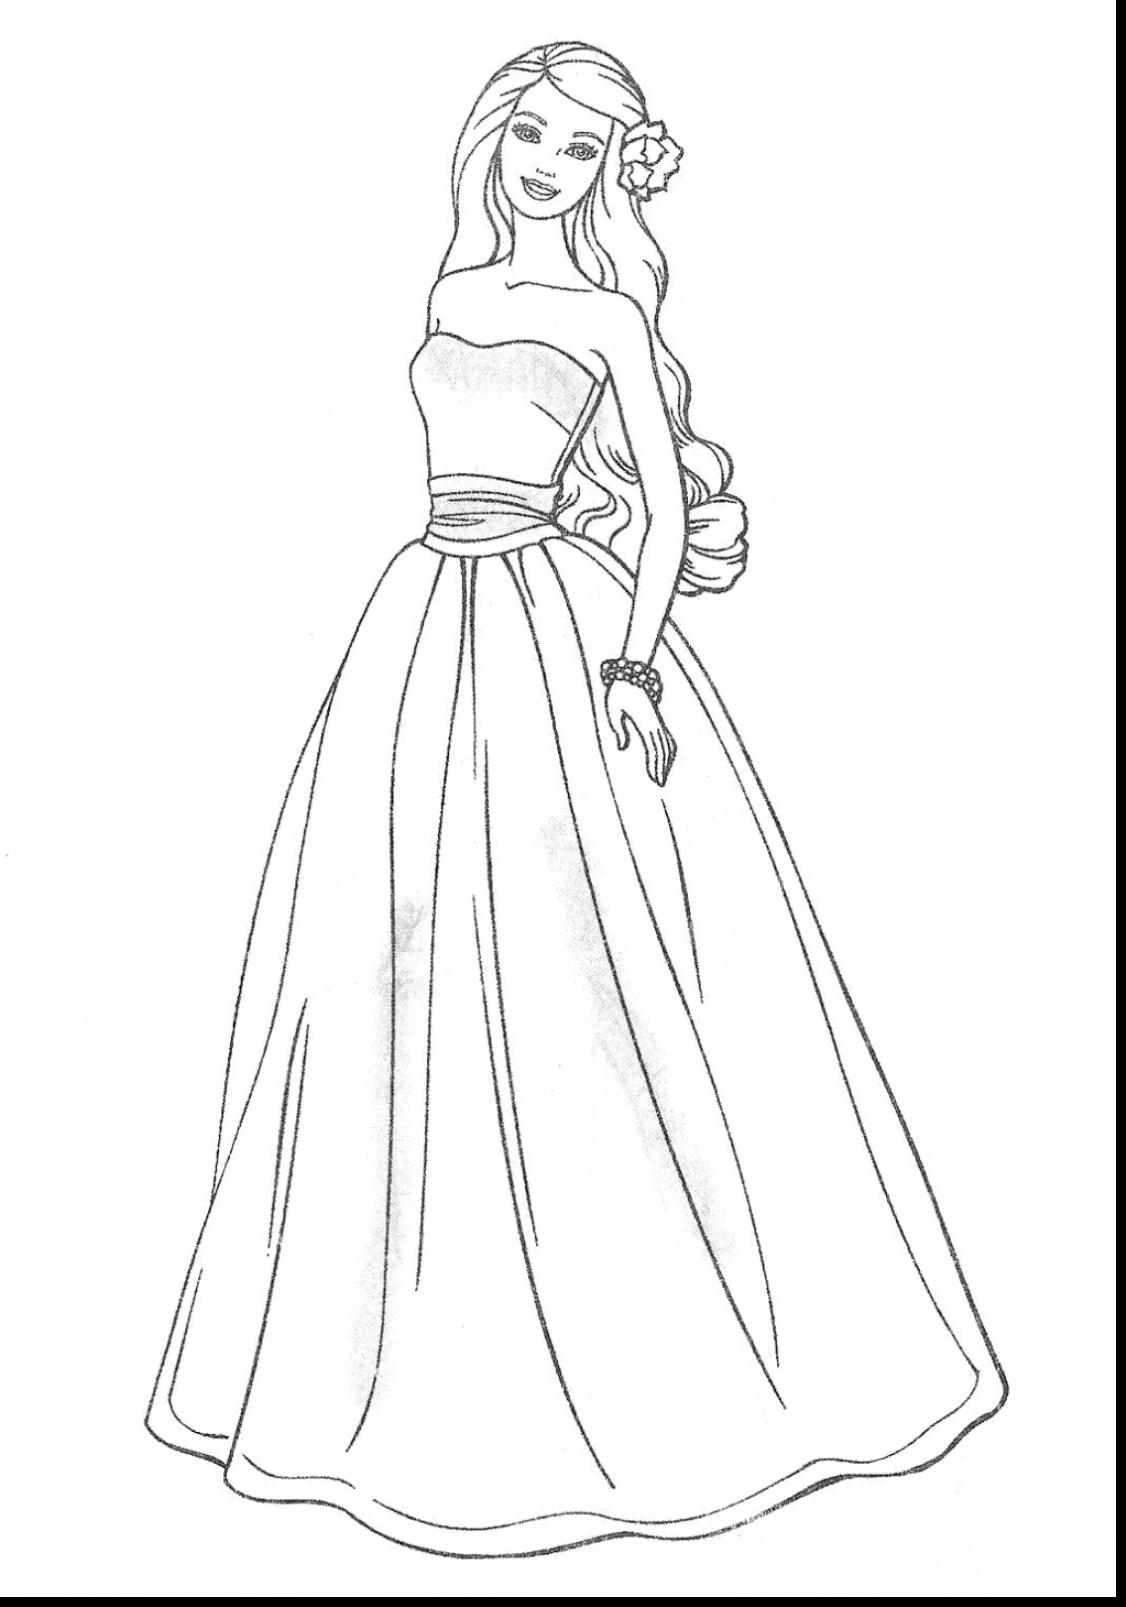 dress coloring pages - designer dress coloring pages 5bAMD4mBrod2aMx608U4a5jG2v4S28sG7dbrNYfsjBk